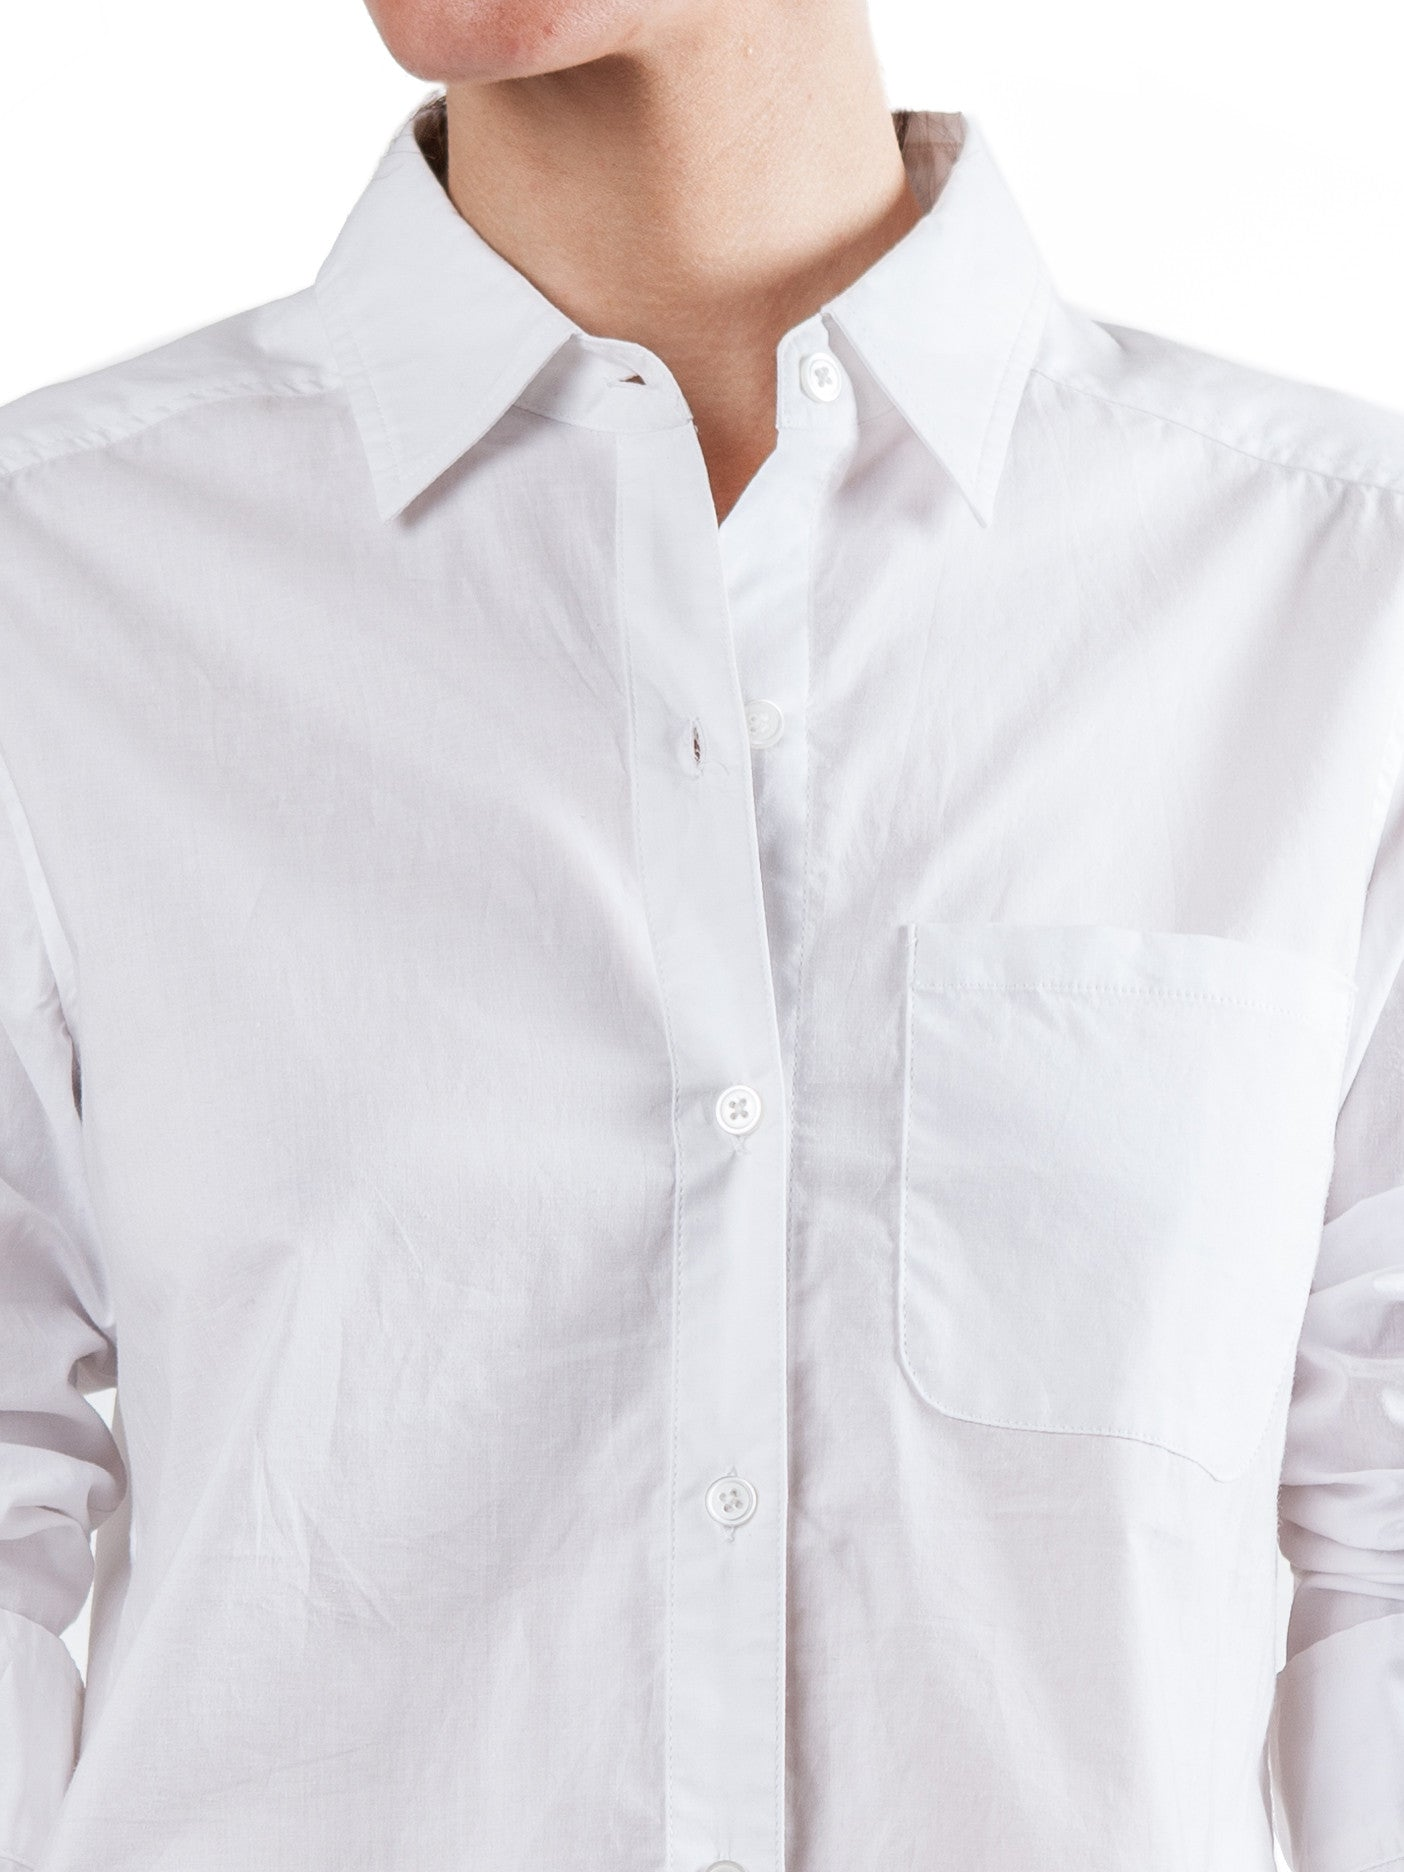 White shirt | Cotton